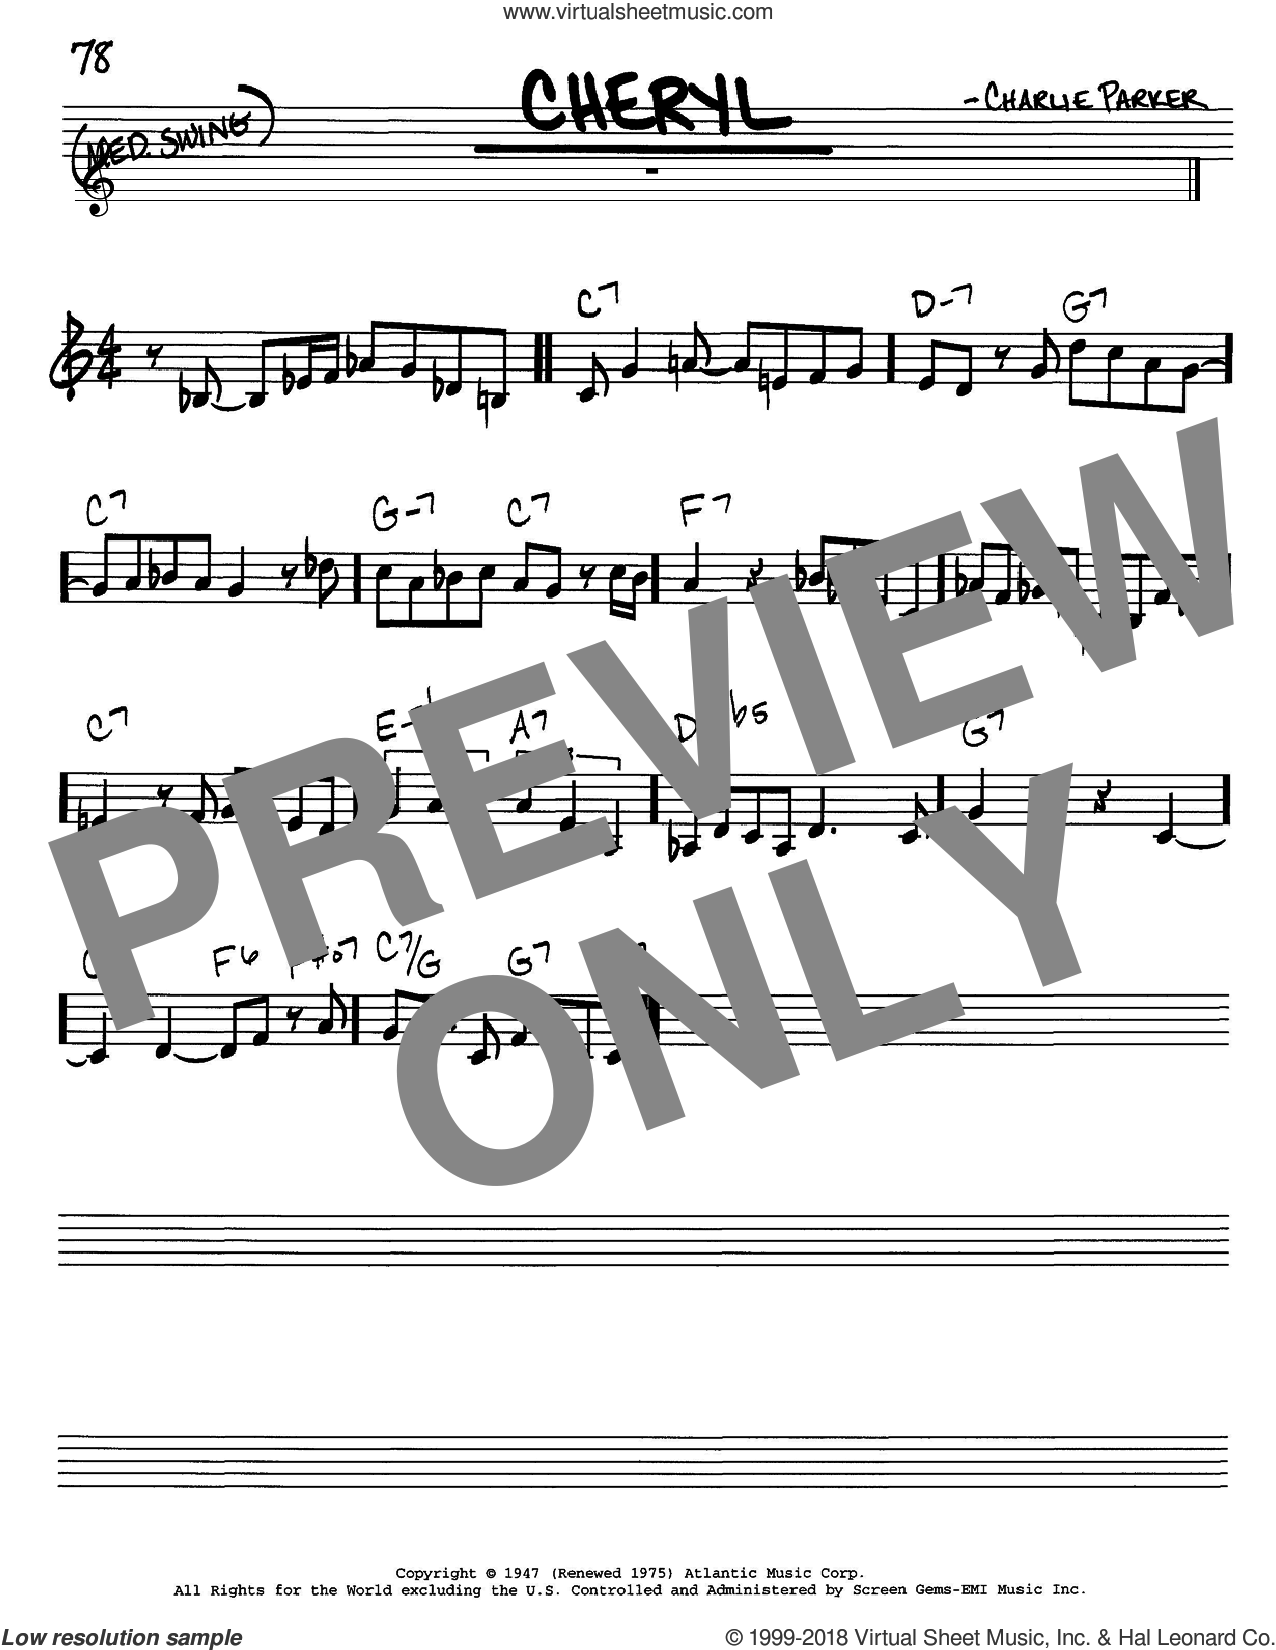 Cheryl sheet music for voice and other instruments (C) by Charlie Parker, intermediate voice. Score Image Preview.